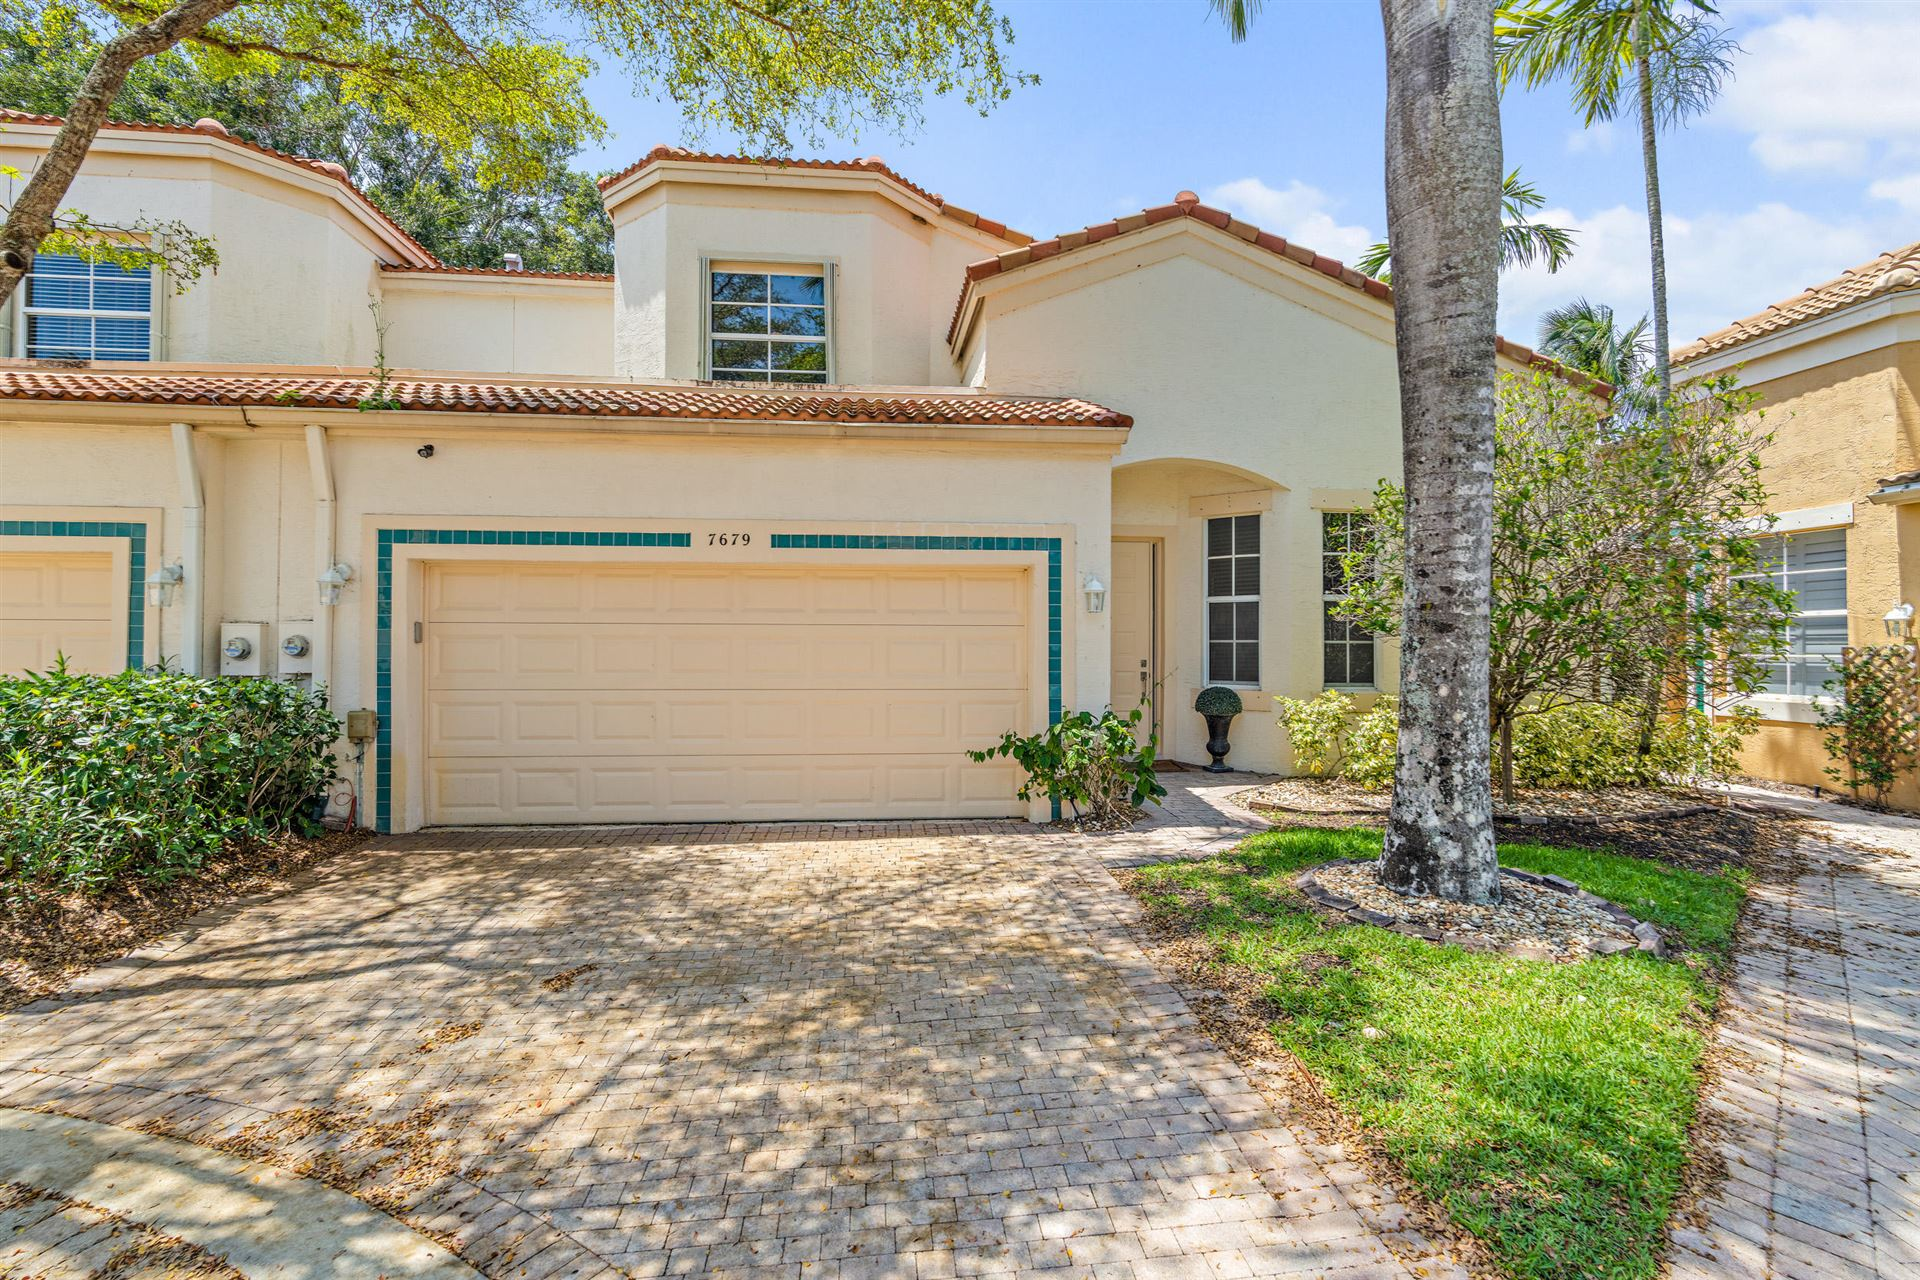 Photo of 7679 Dahlia Court, West Palm Beach, FL 33412 (MLS # RX-10709807)